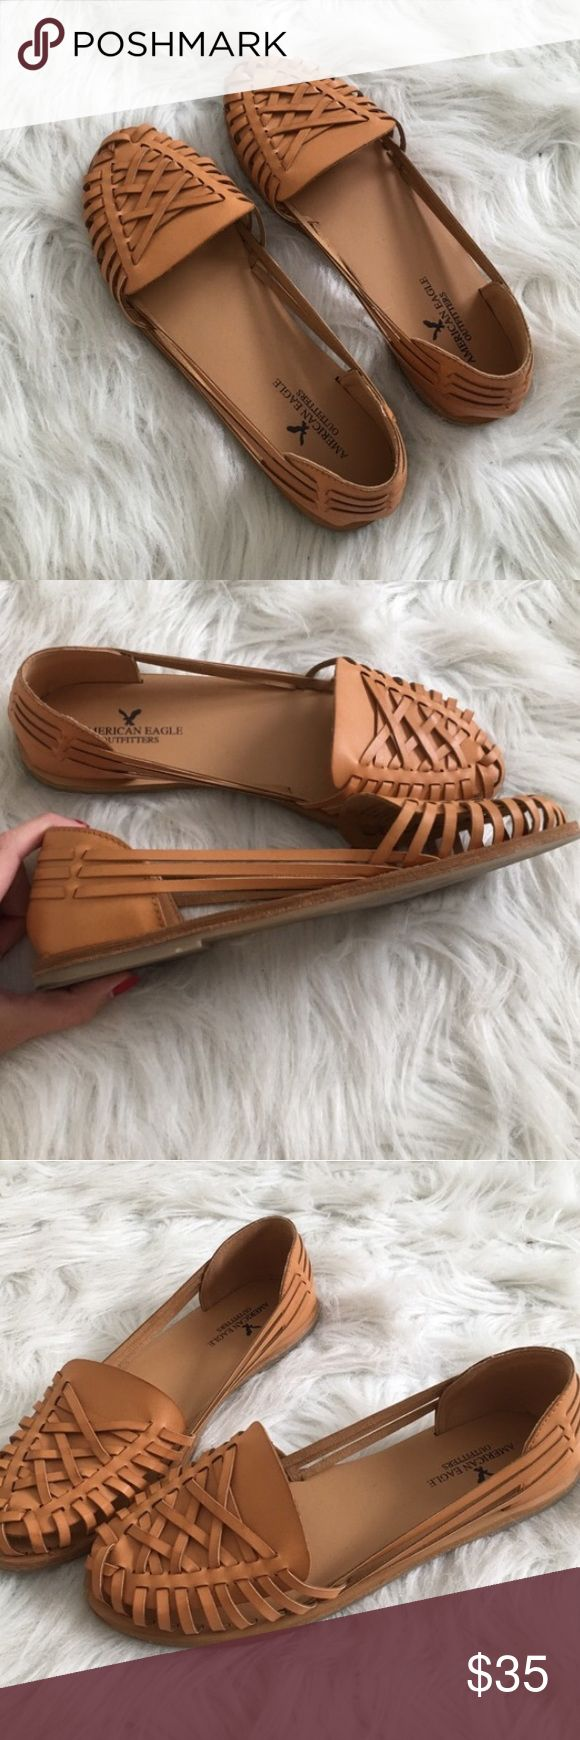 Tan huarache sandal American Eagle Strappy Mexican Bought these from another posher but unfortunately just a little too big. I am a 7.5 and these are a true 8! Gorgeous condition Love Love Love these Mexican style huarache Sandal! Very boho hippie vintage. Make an offer ☺️ American Eagle Outfitters Shoes Sandals